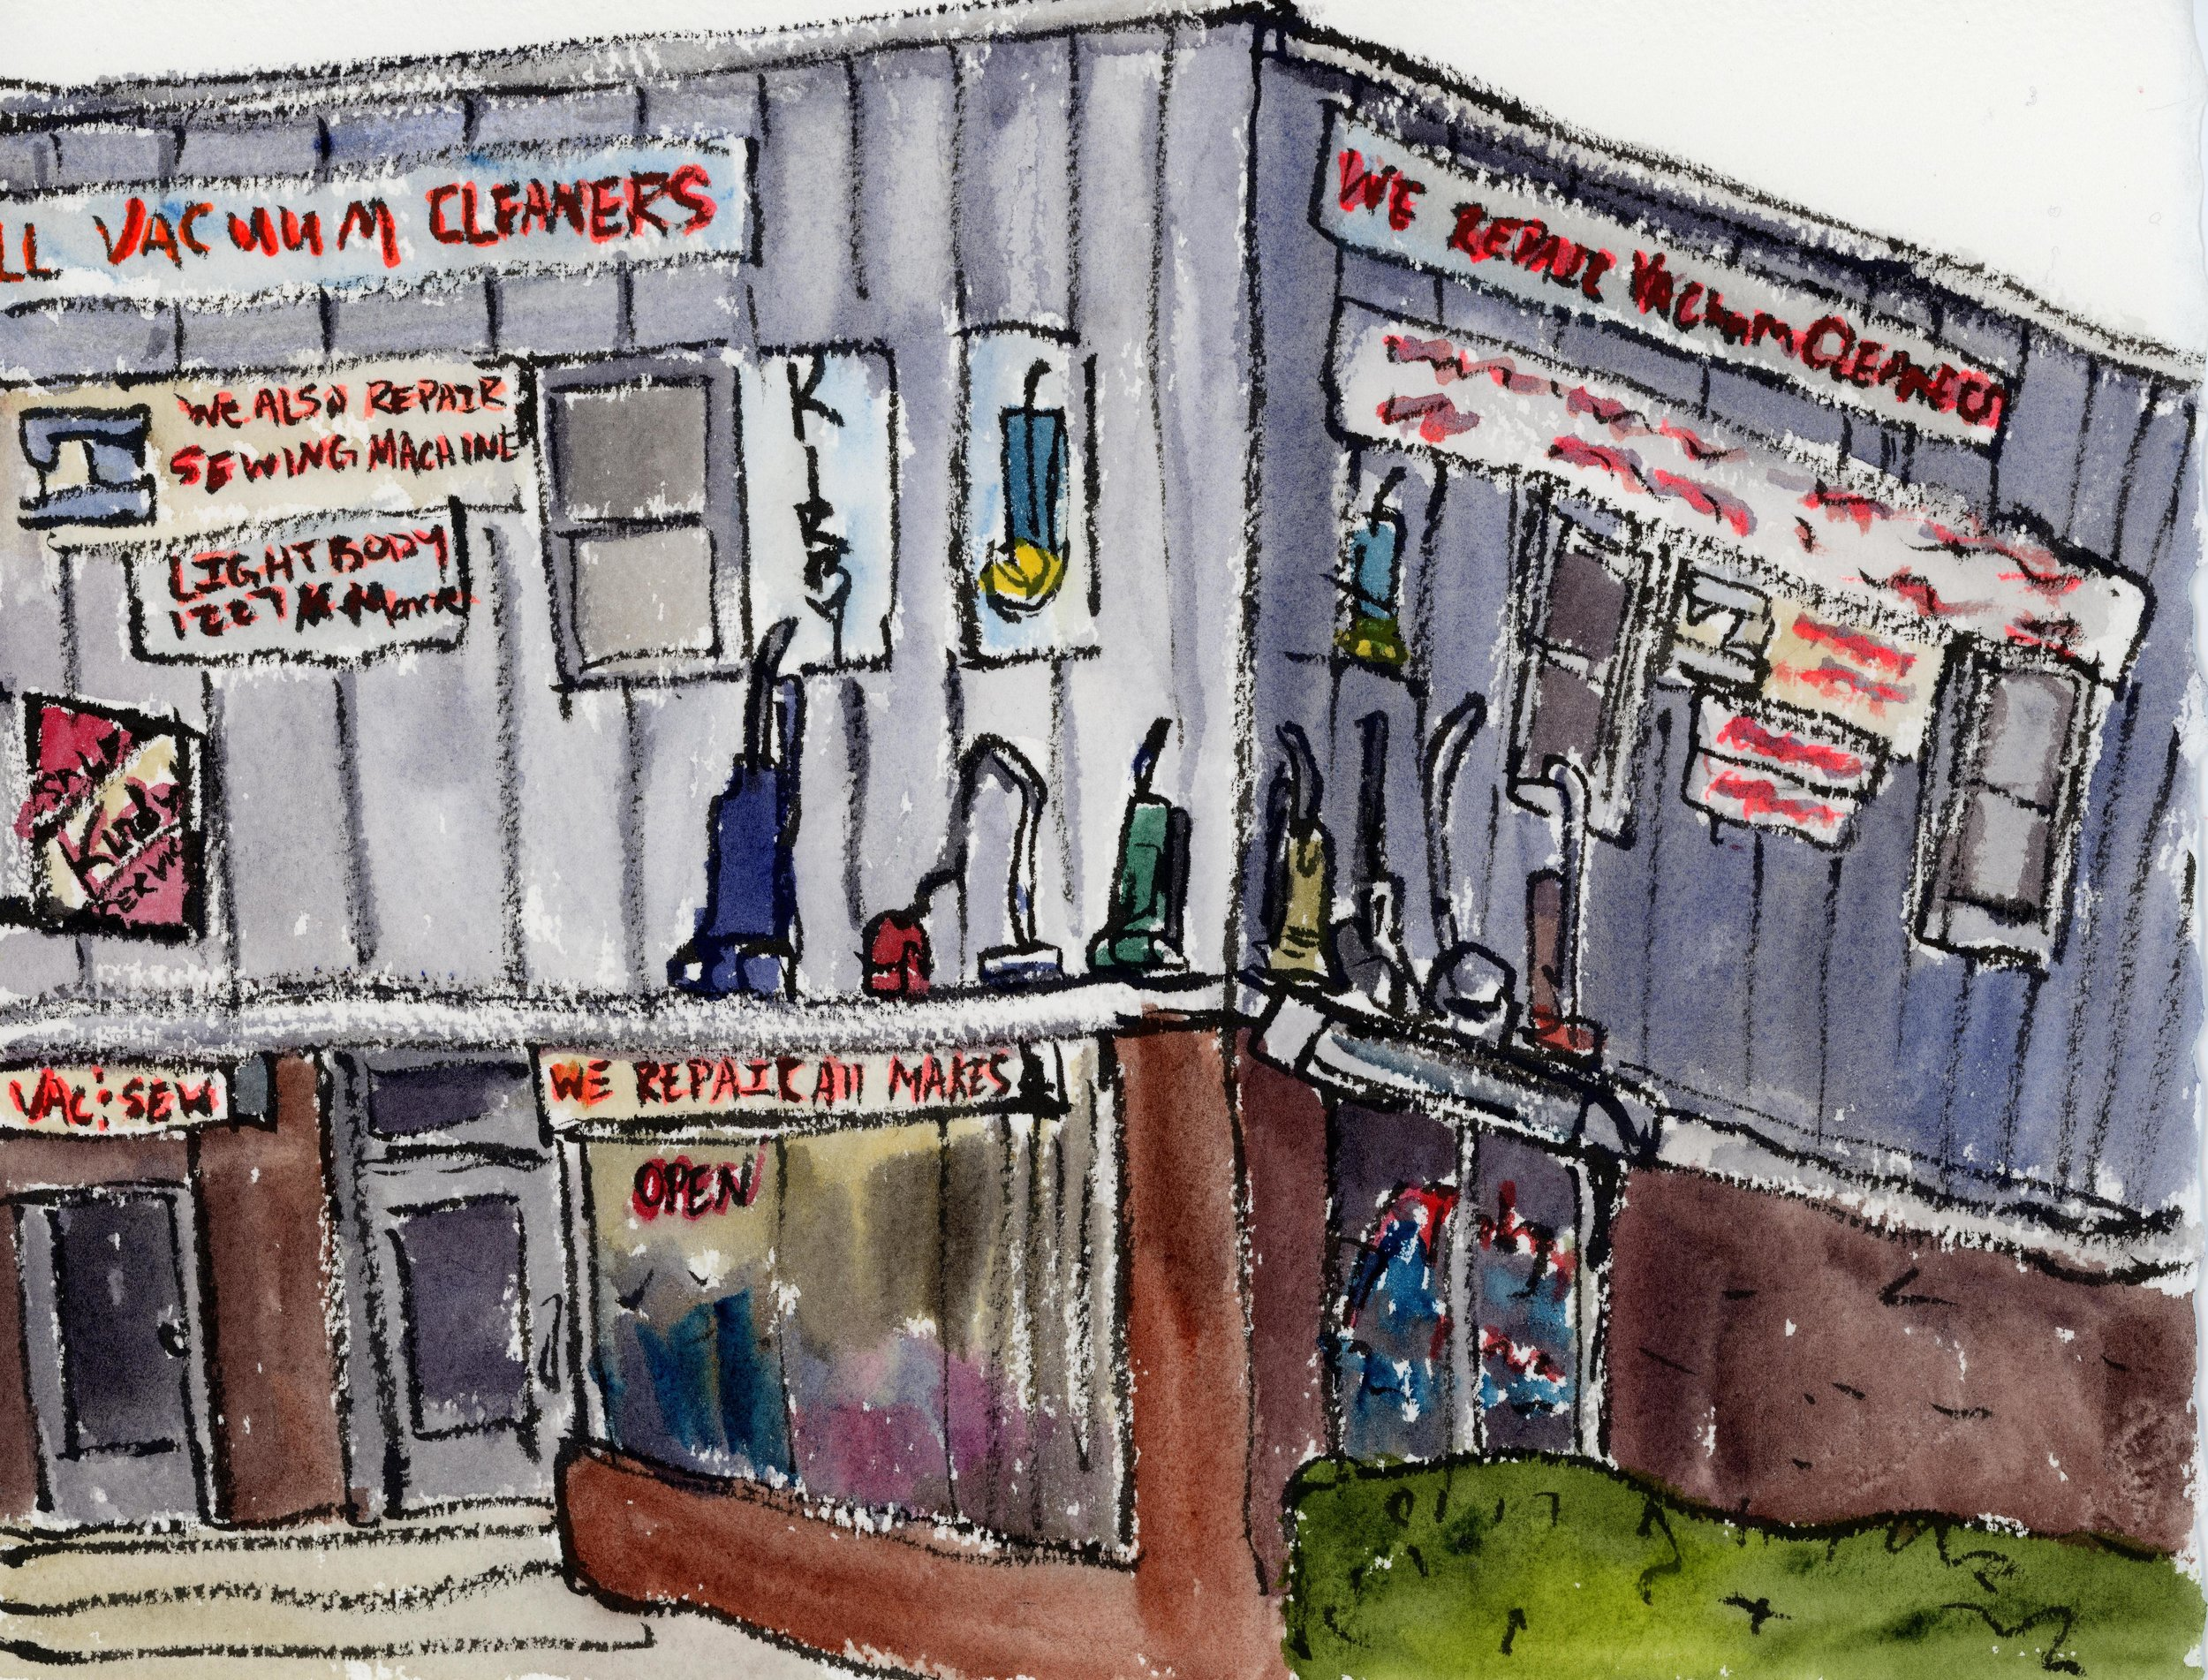 I've always loved this little building. Seeing these vacuums hanging out on the walls always makes me laugh whenever I drive by. Plus the fact that a small business focusing on sewing machine and vacuum repair still kicking is great. This was painted in my car with the heater on to keep me from freezing. Winter puts a cramp in my plein air painting habit!